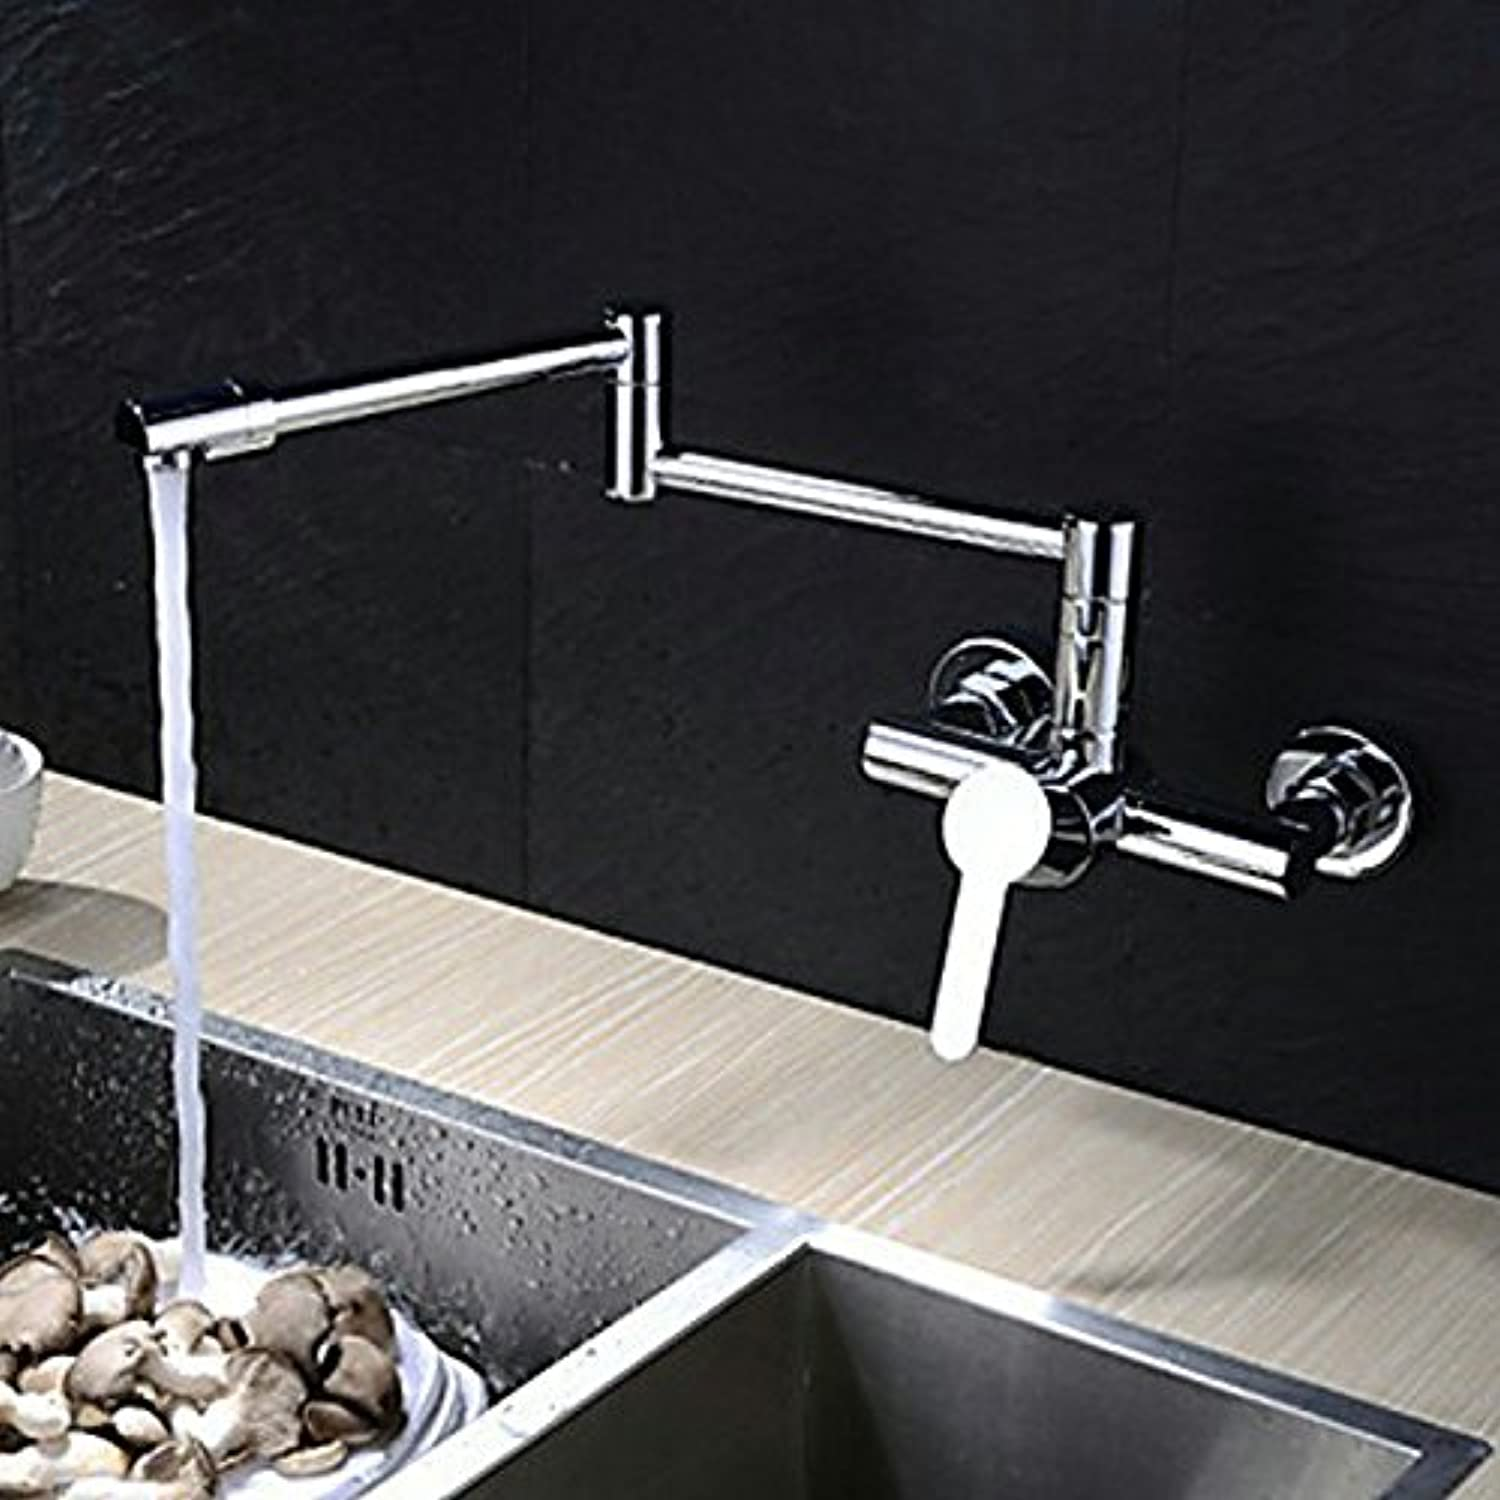 Commercial Single Lever Pull Down Kitchen Sink Faucet Brass Constructed Polished Sink Faucet Kitchen Copper Hot and Cold Water Basin Faucet Faucet European Chrome Mixed Mixer